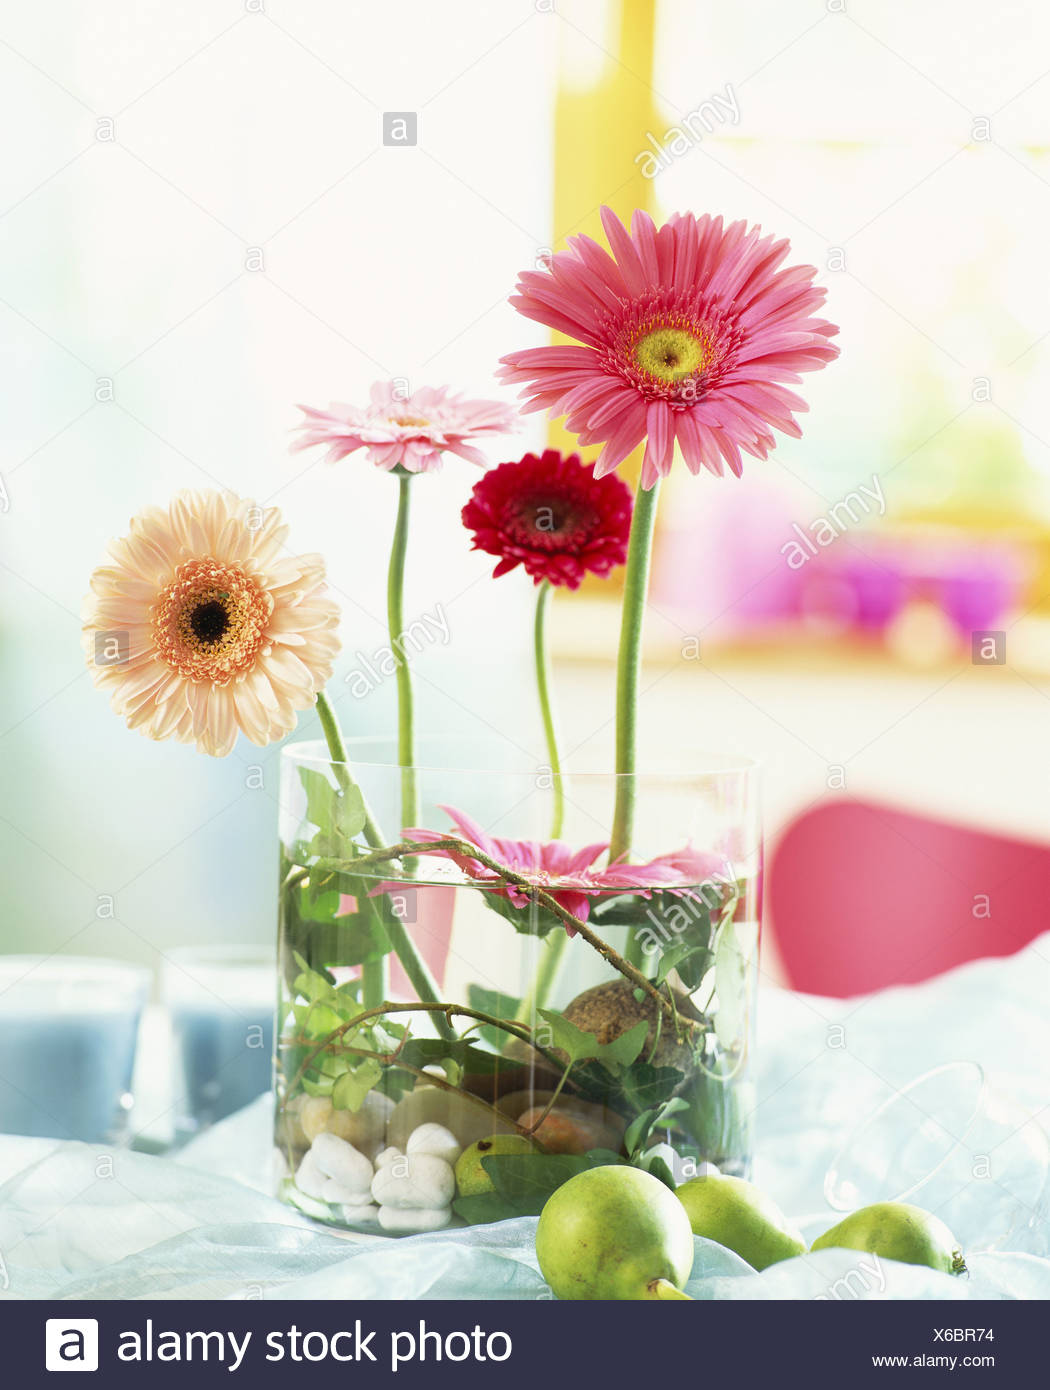 Gerberas, upright and floating in a glass container - Stock Image